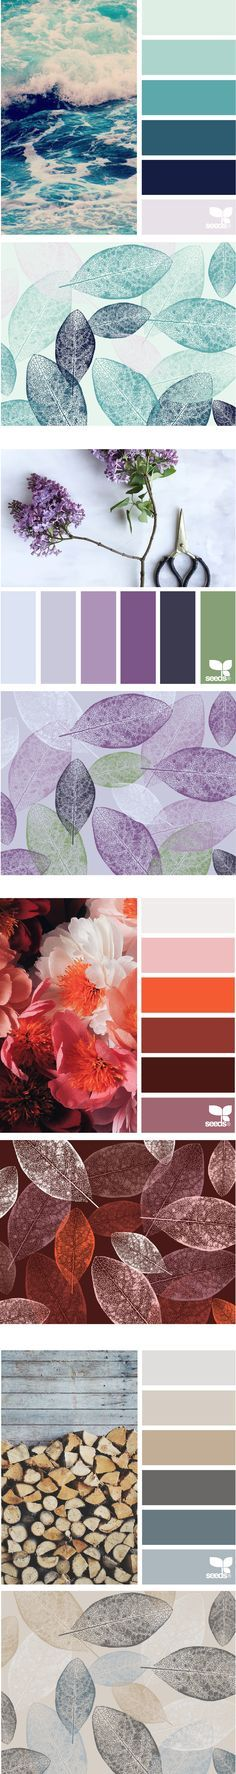 Announcing my new color class! Enter the colorful world of Design Seeds, and lea., my new color class! Enter the colorful world of Design Seeds, and learn my process for using color inspired by the seasons in Inspired Colo. Colour Pallette, Colour Schemes, Color Combos, Ocean Color Palette, Color Balance, Color Theory, House Colors, Color Inspiration, Pantone